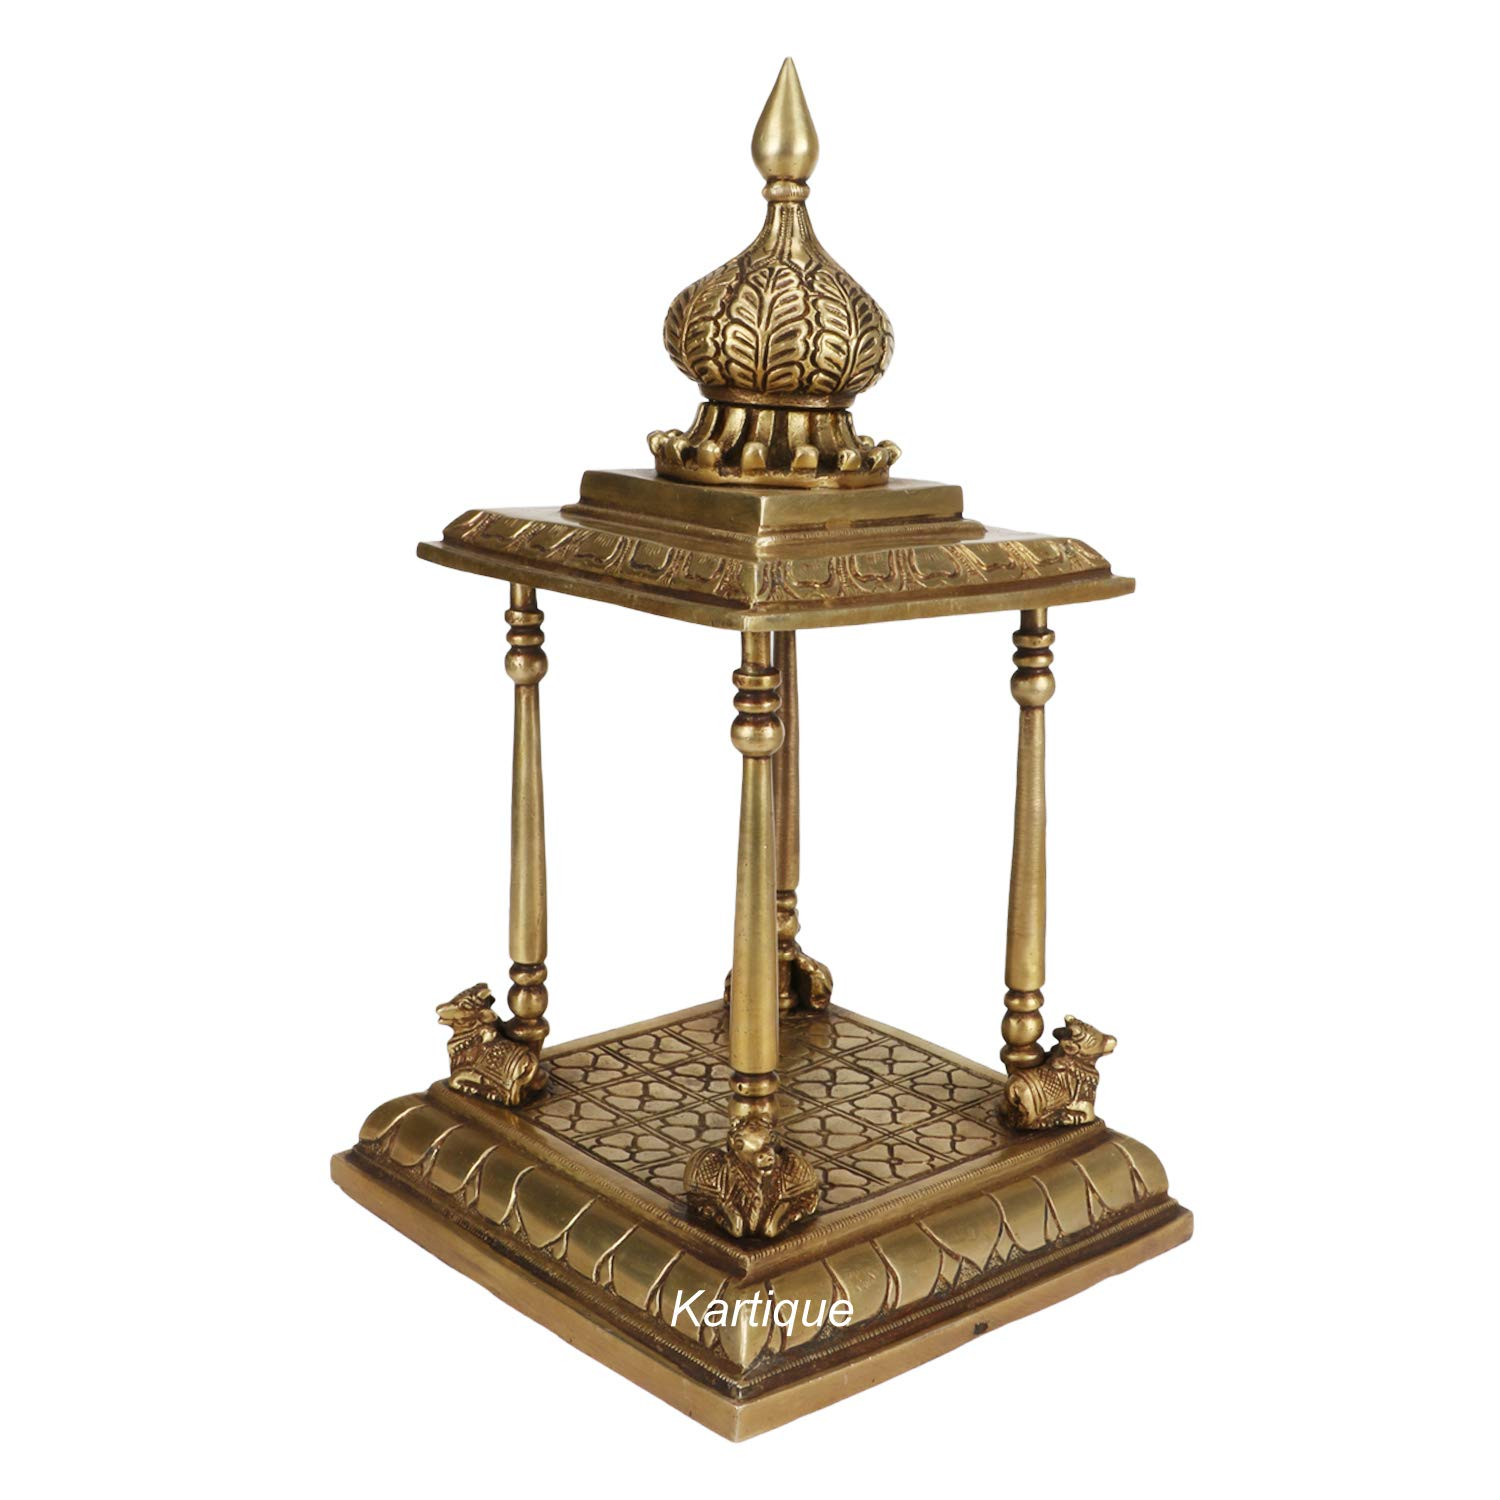 Kartique Handcrafted Brass Temple Pooja Mandir For Living Room Pooja Decoration Religious Home Decor Amazon In Home Kitchen